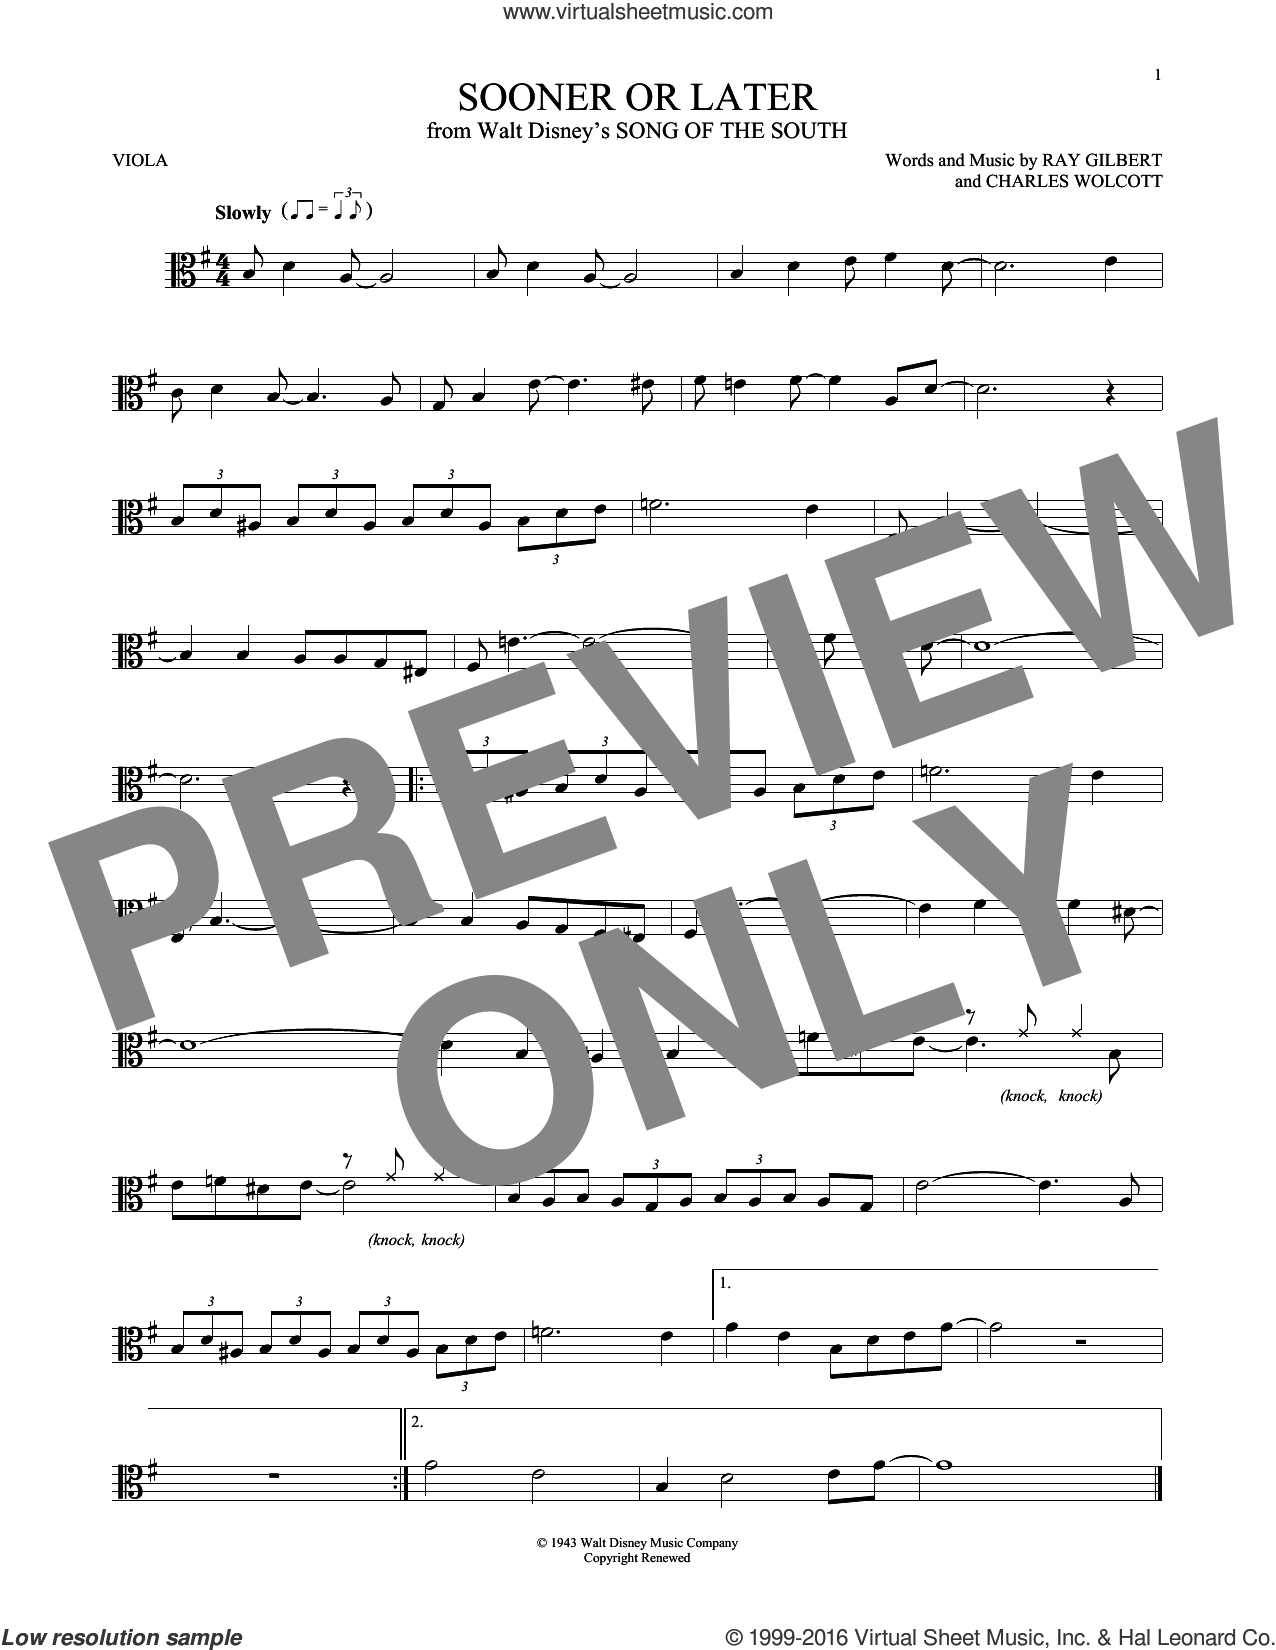 Sooner Or Later sheet music for viola solo by Ray Gilbert, Charles Wolcott and Ray Gilbert & Charles Wolcott, intermediate skill level